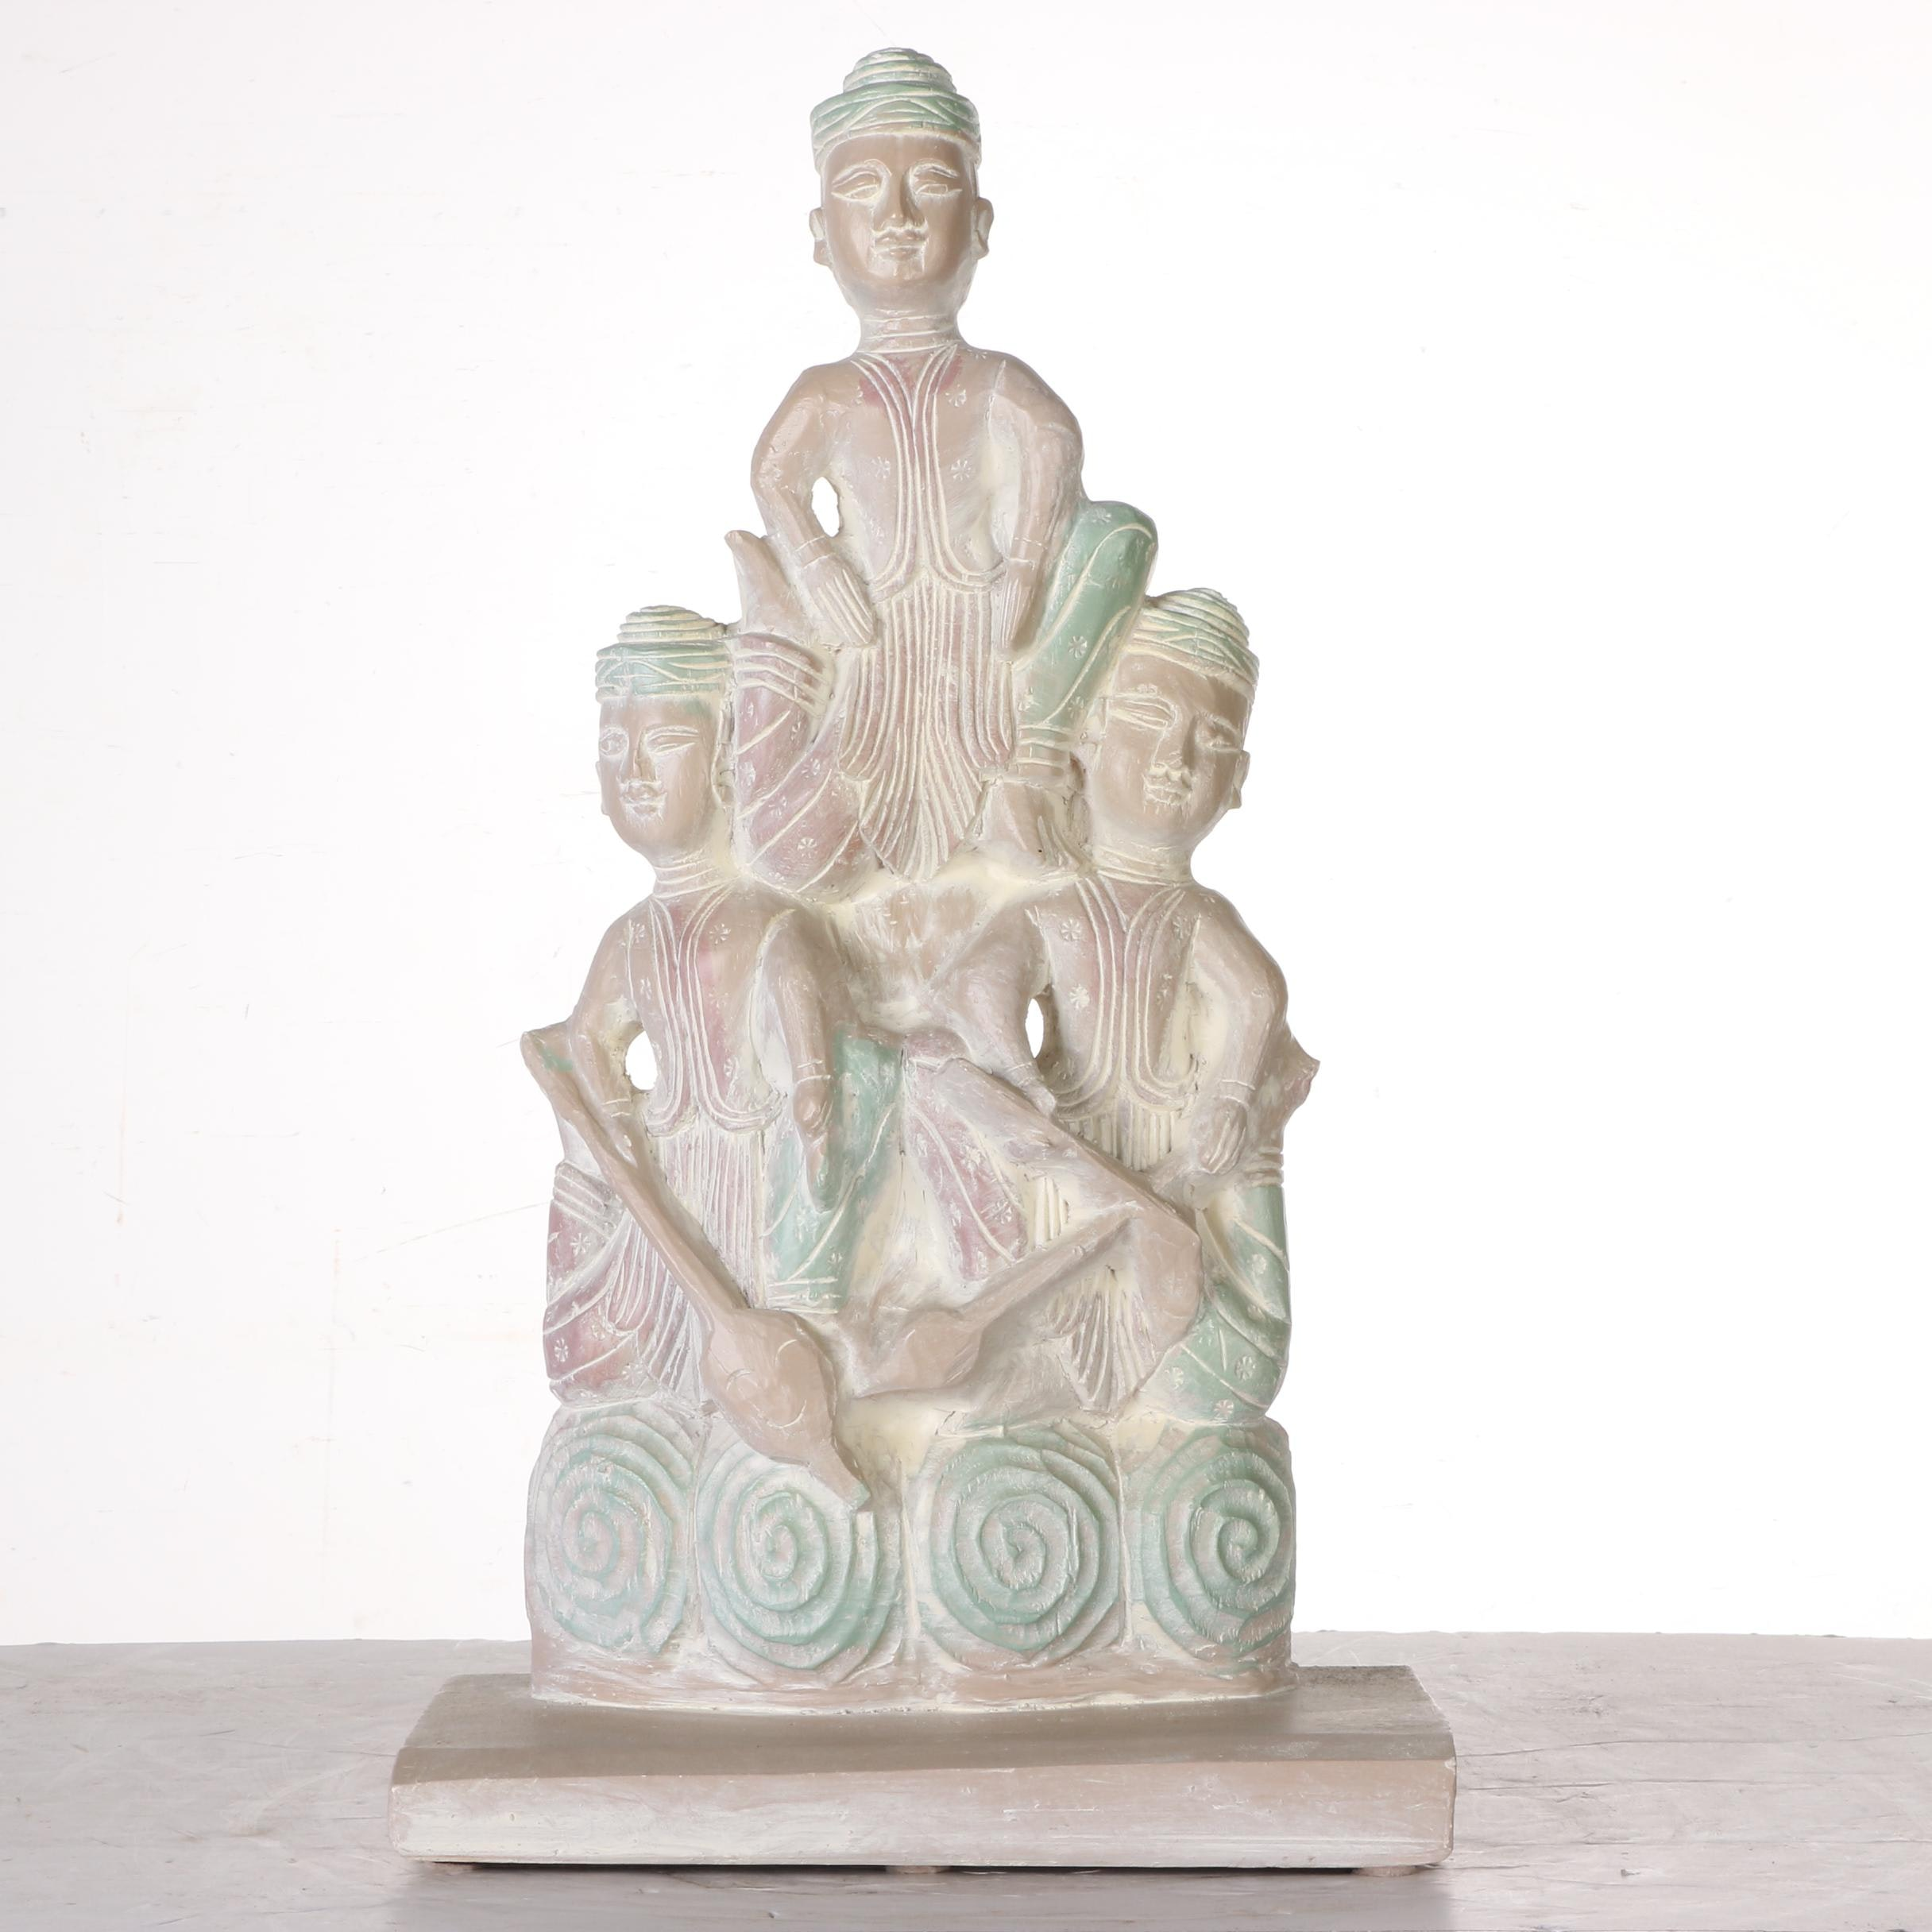 Plaster Sculpture of East Asian Figures